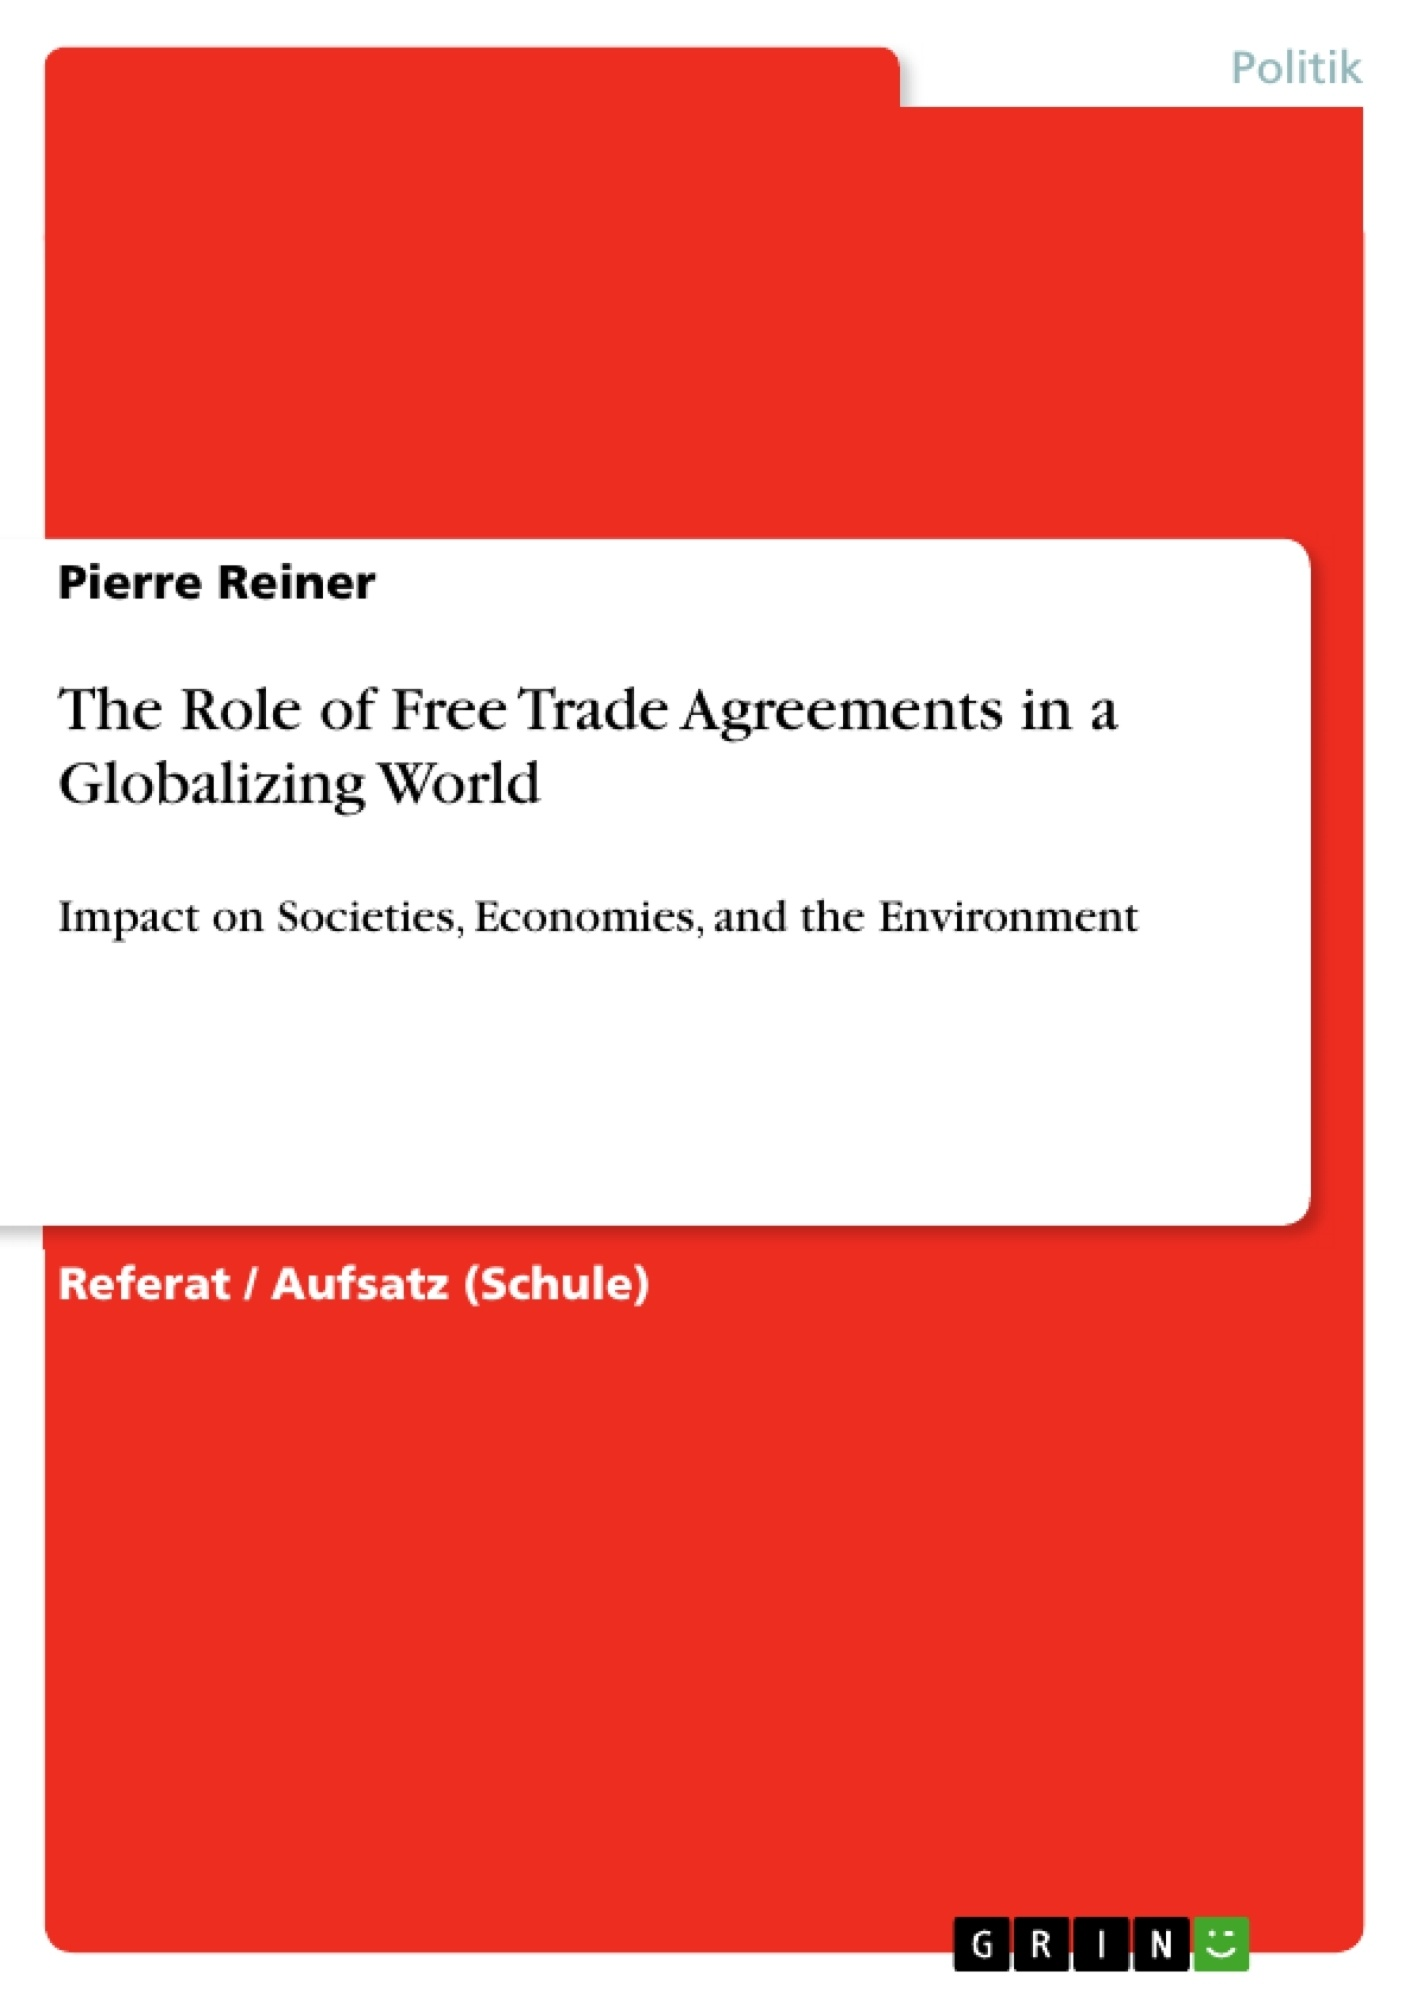 Titel: The Role of Free Trade Agreements in a Globalizing World